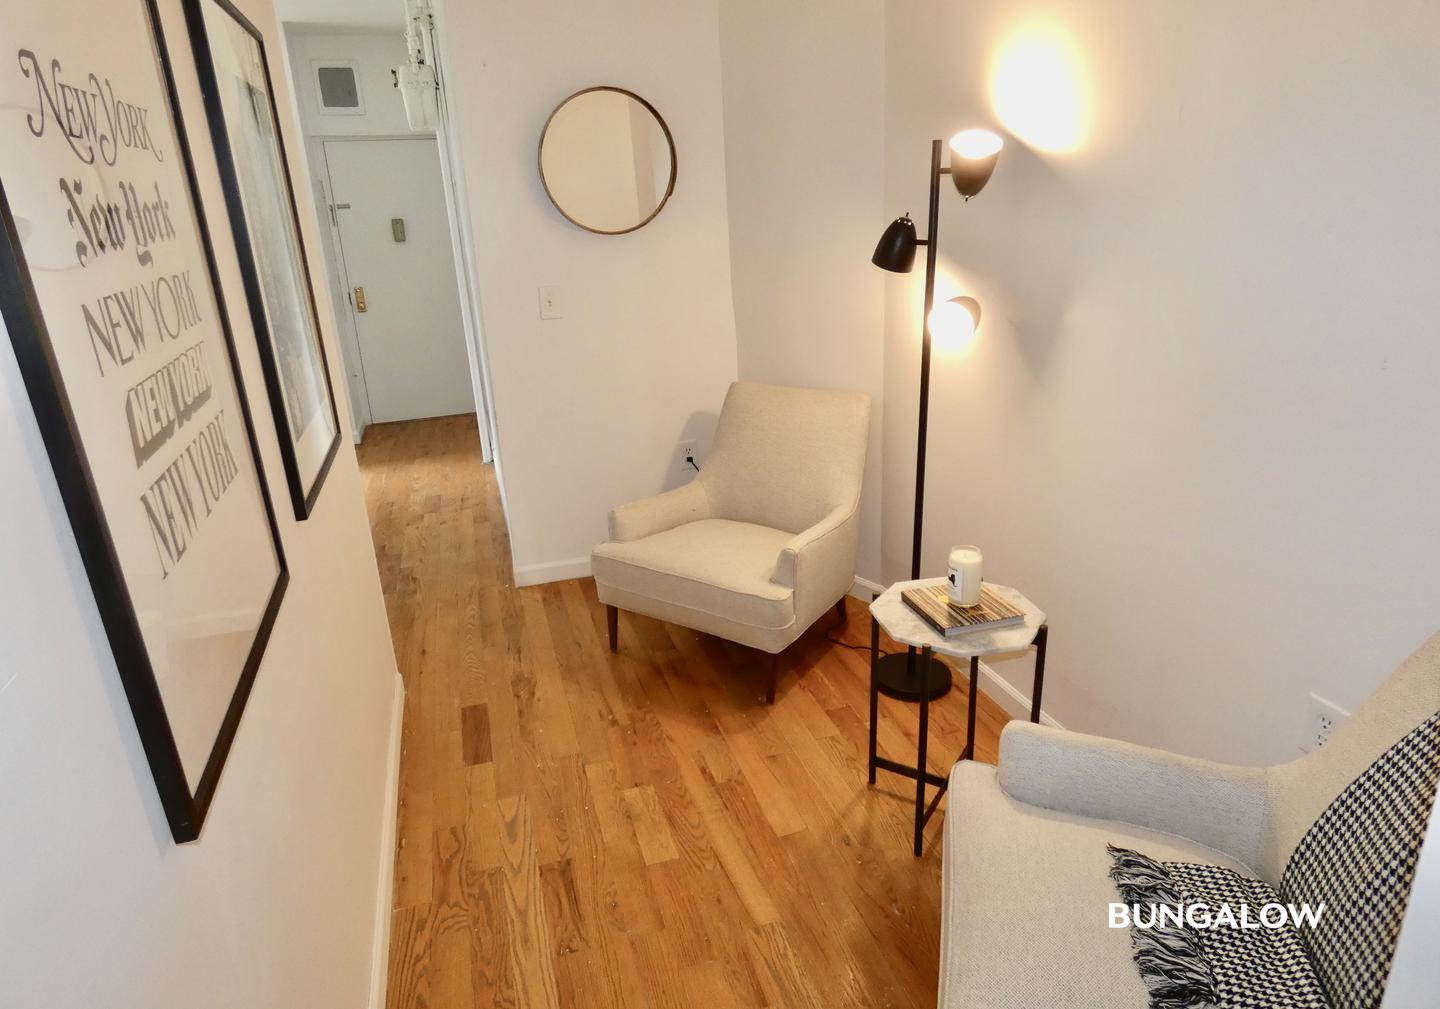 Sublets Near Nutley Private Room in Gorgeous Lower East Side Apartment with Arcade for Nutley Students in Nutley, NJ